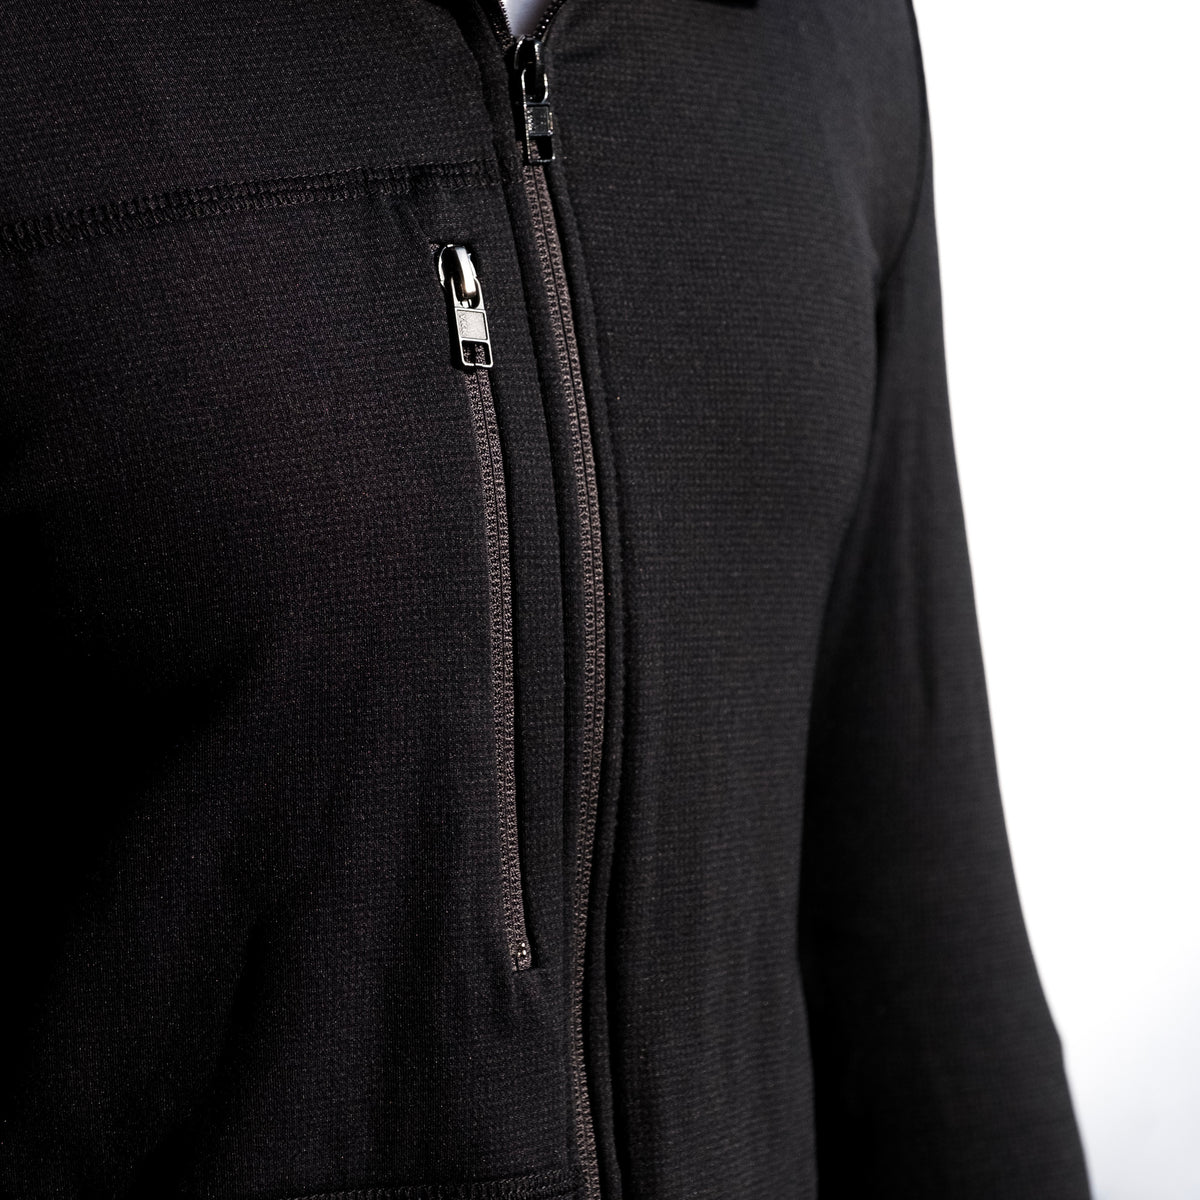 Mens Performance Jacket by Polartec®